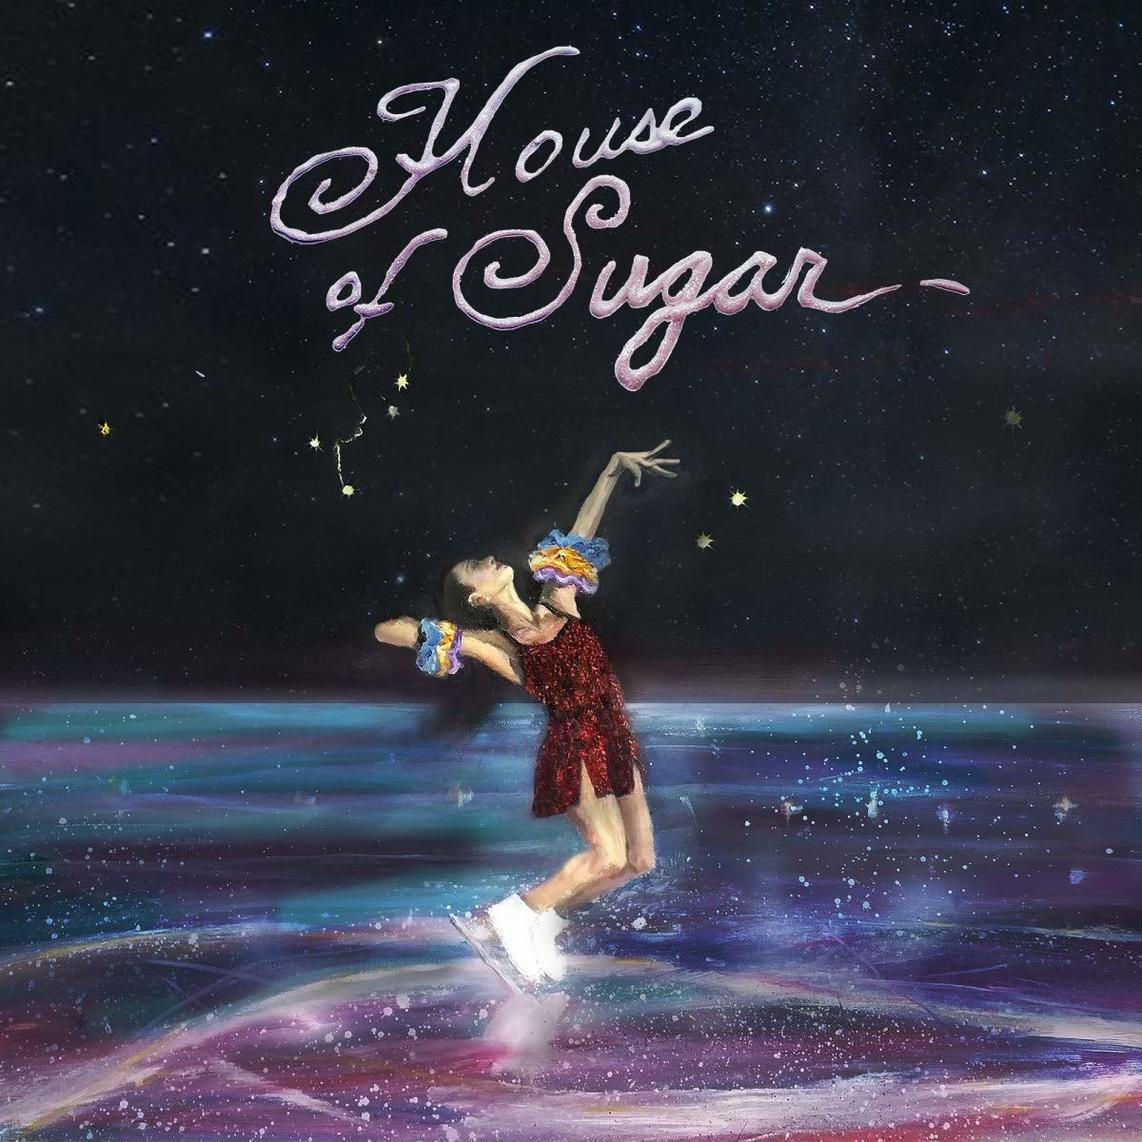 Audio Cd (Sandy) Alex G - House Of Sugar NUOVO SIGILLATO, EDIZIONE DEL 20/09/2019 SUBITO DISPONIBILE